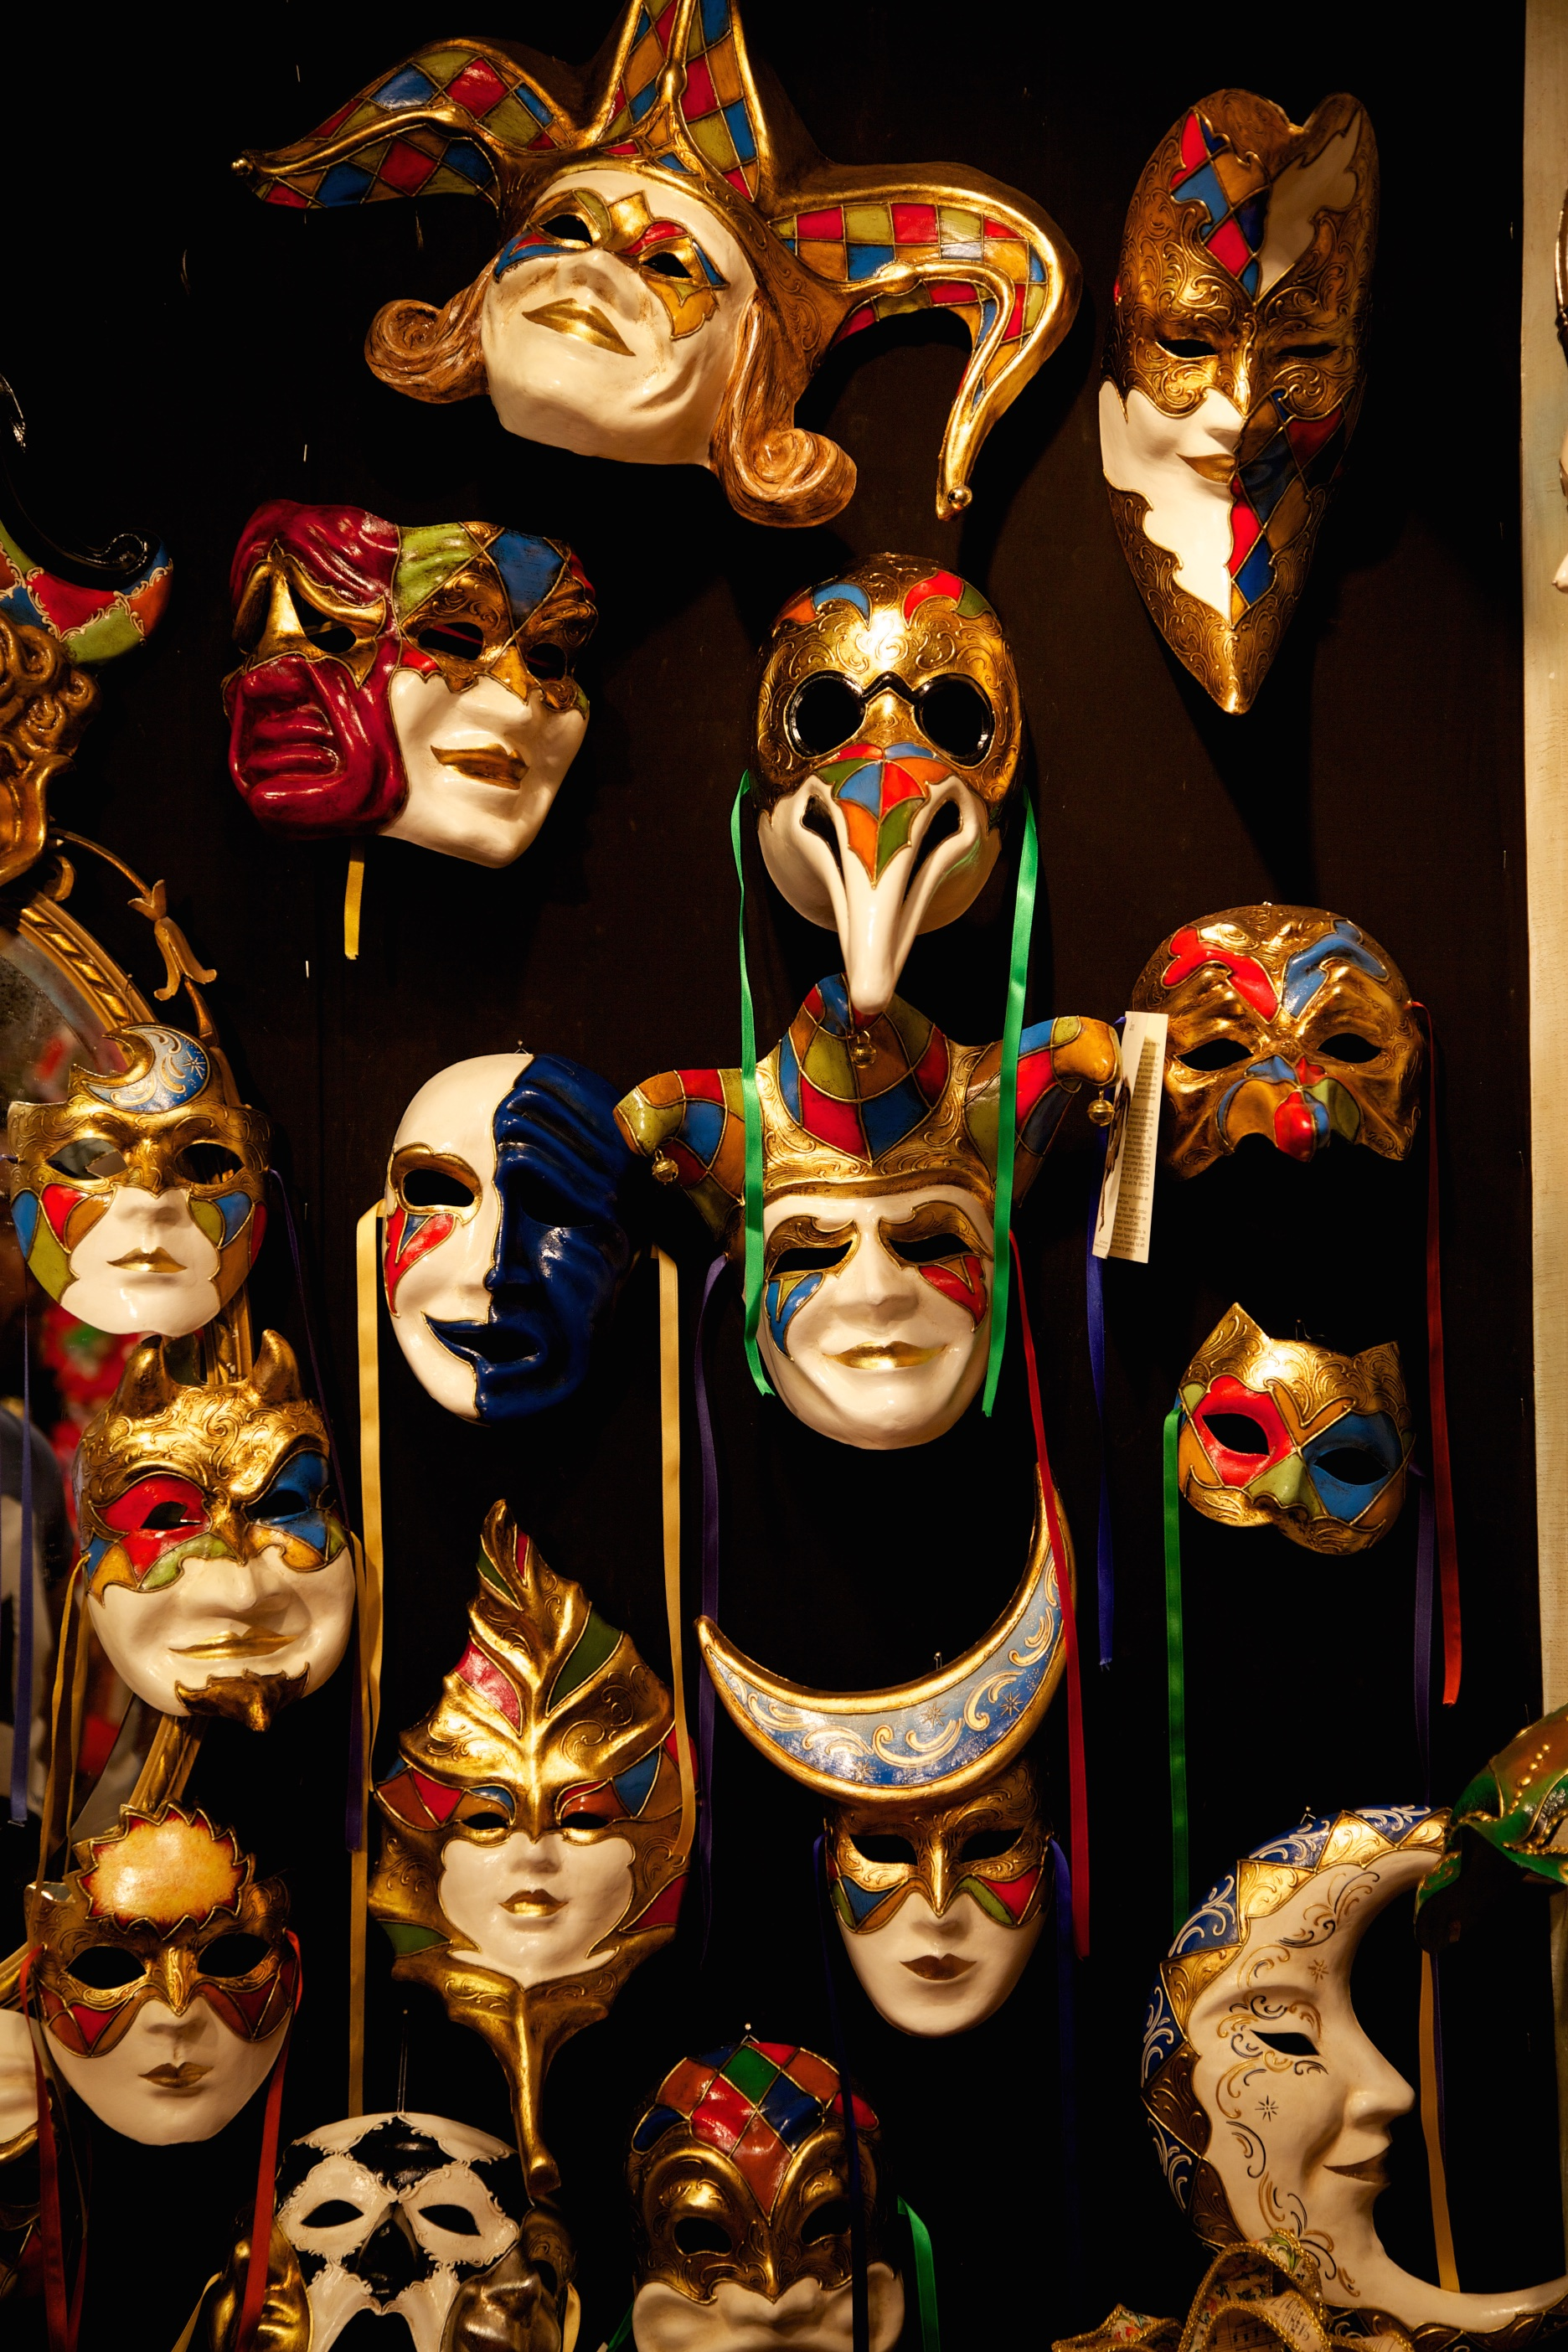 In the darkness behind the masks worn is where the truth is hiding.